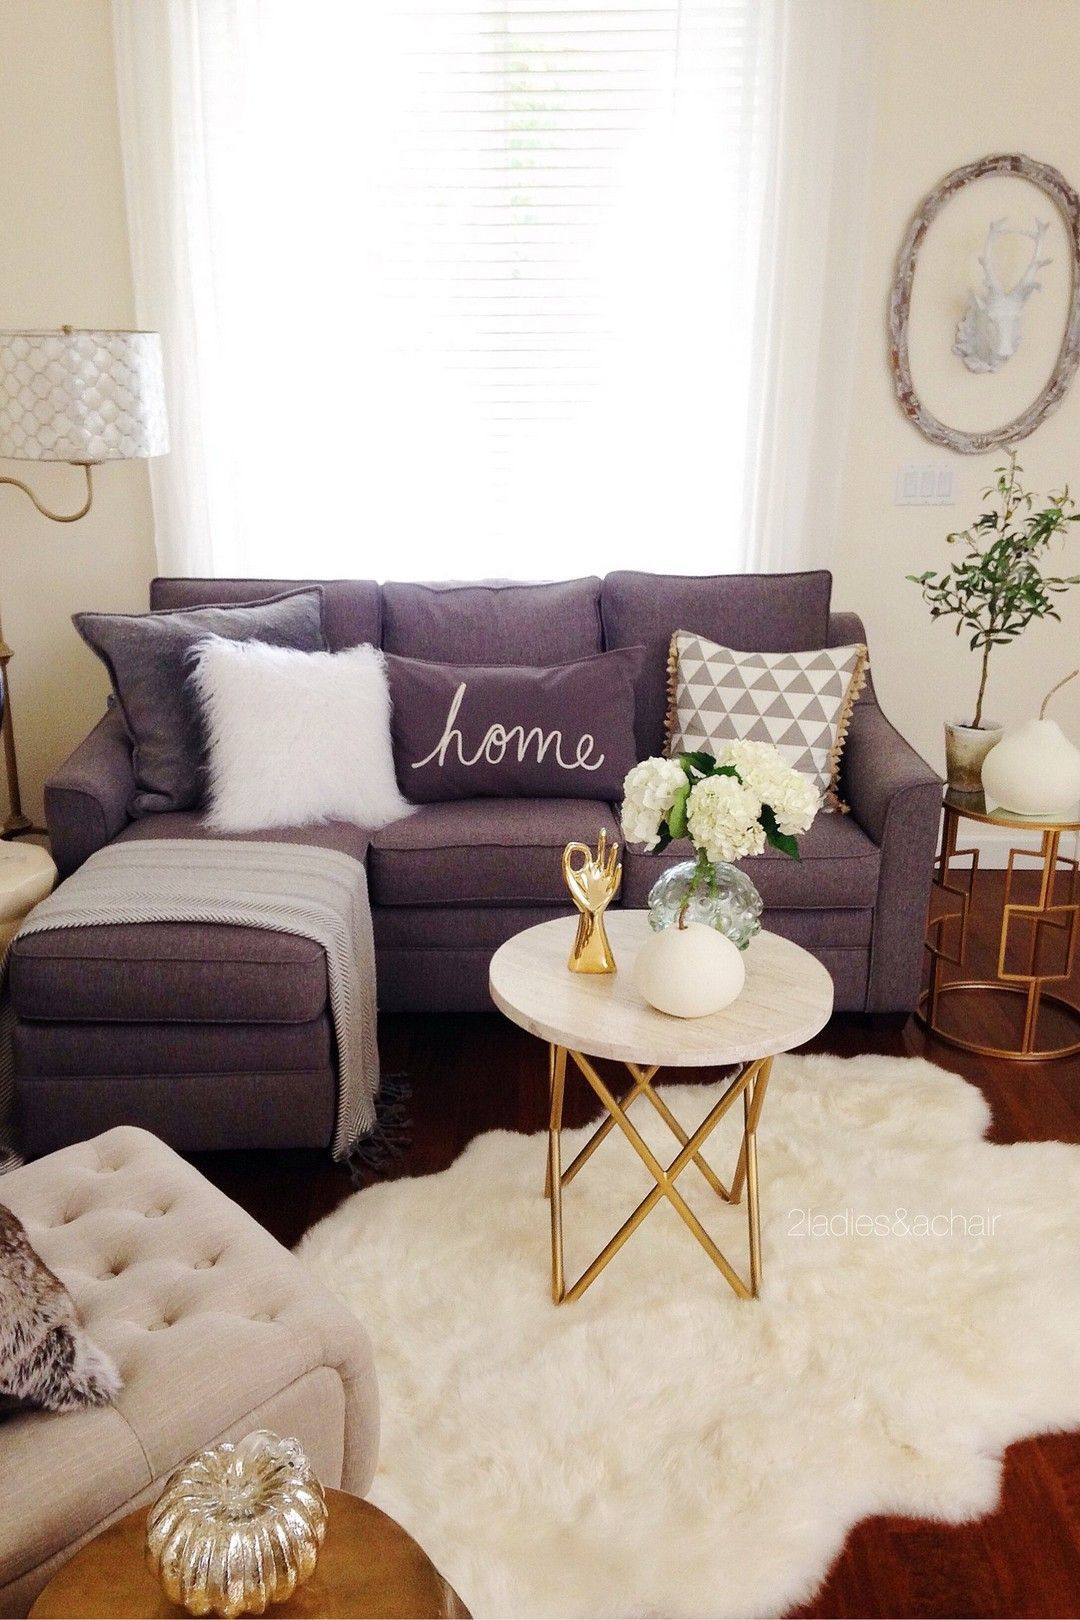 Living Room Design On A Budget Simple 13 Apartment On A Budget Decorating Ideas  11 More Briliant 2018